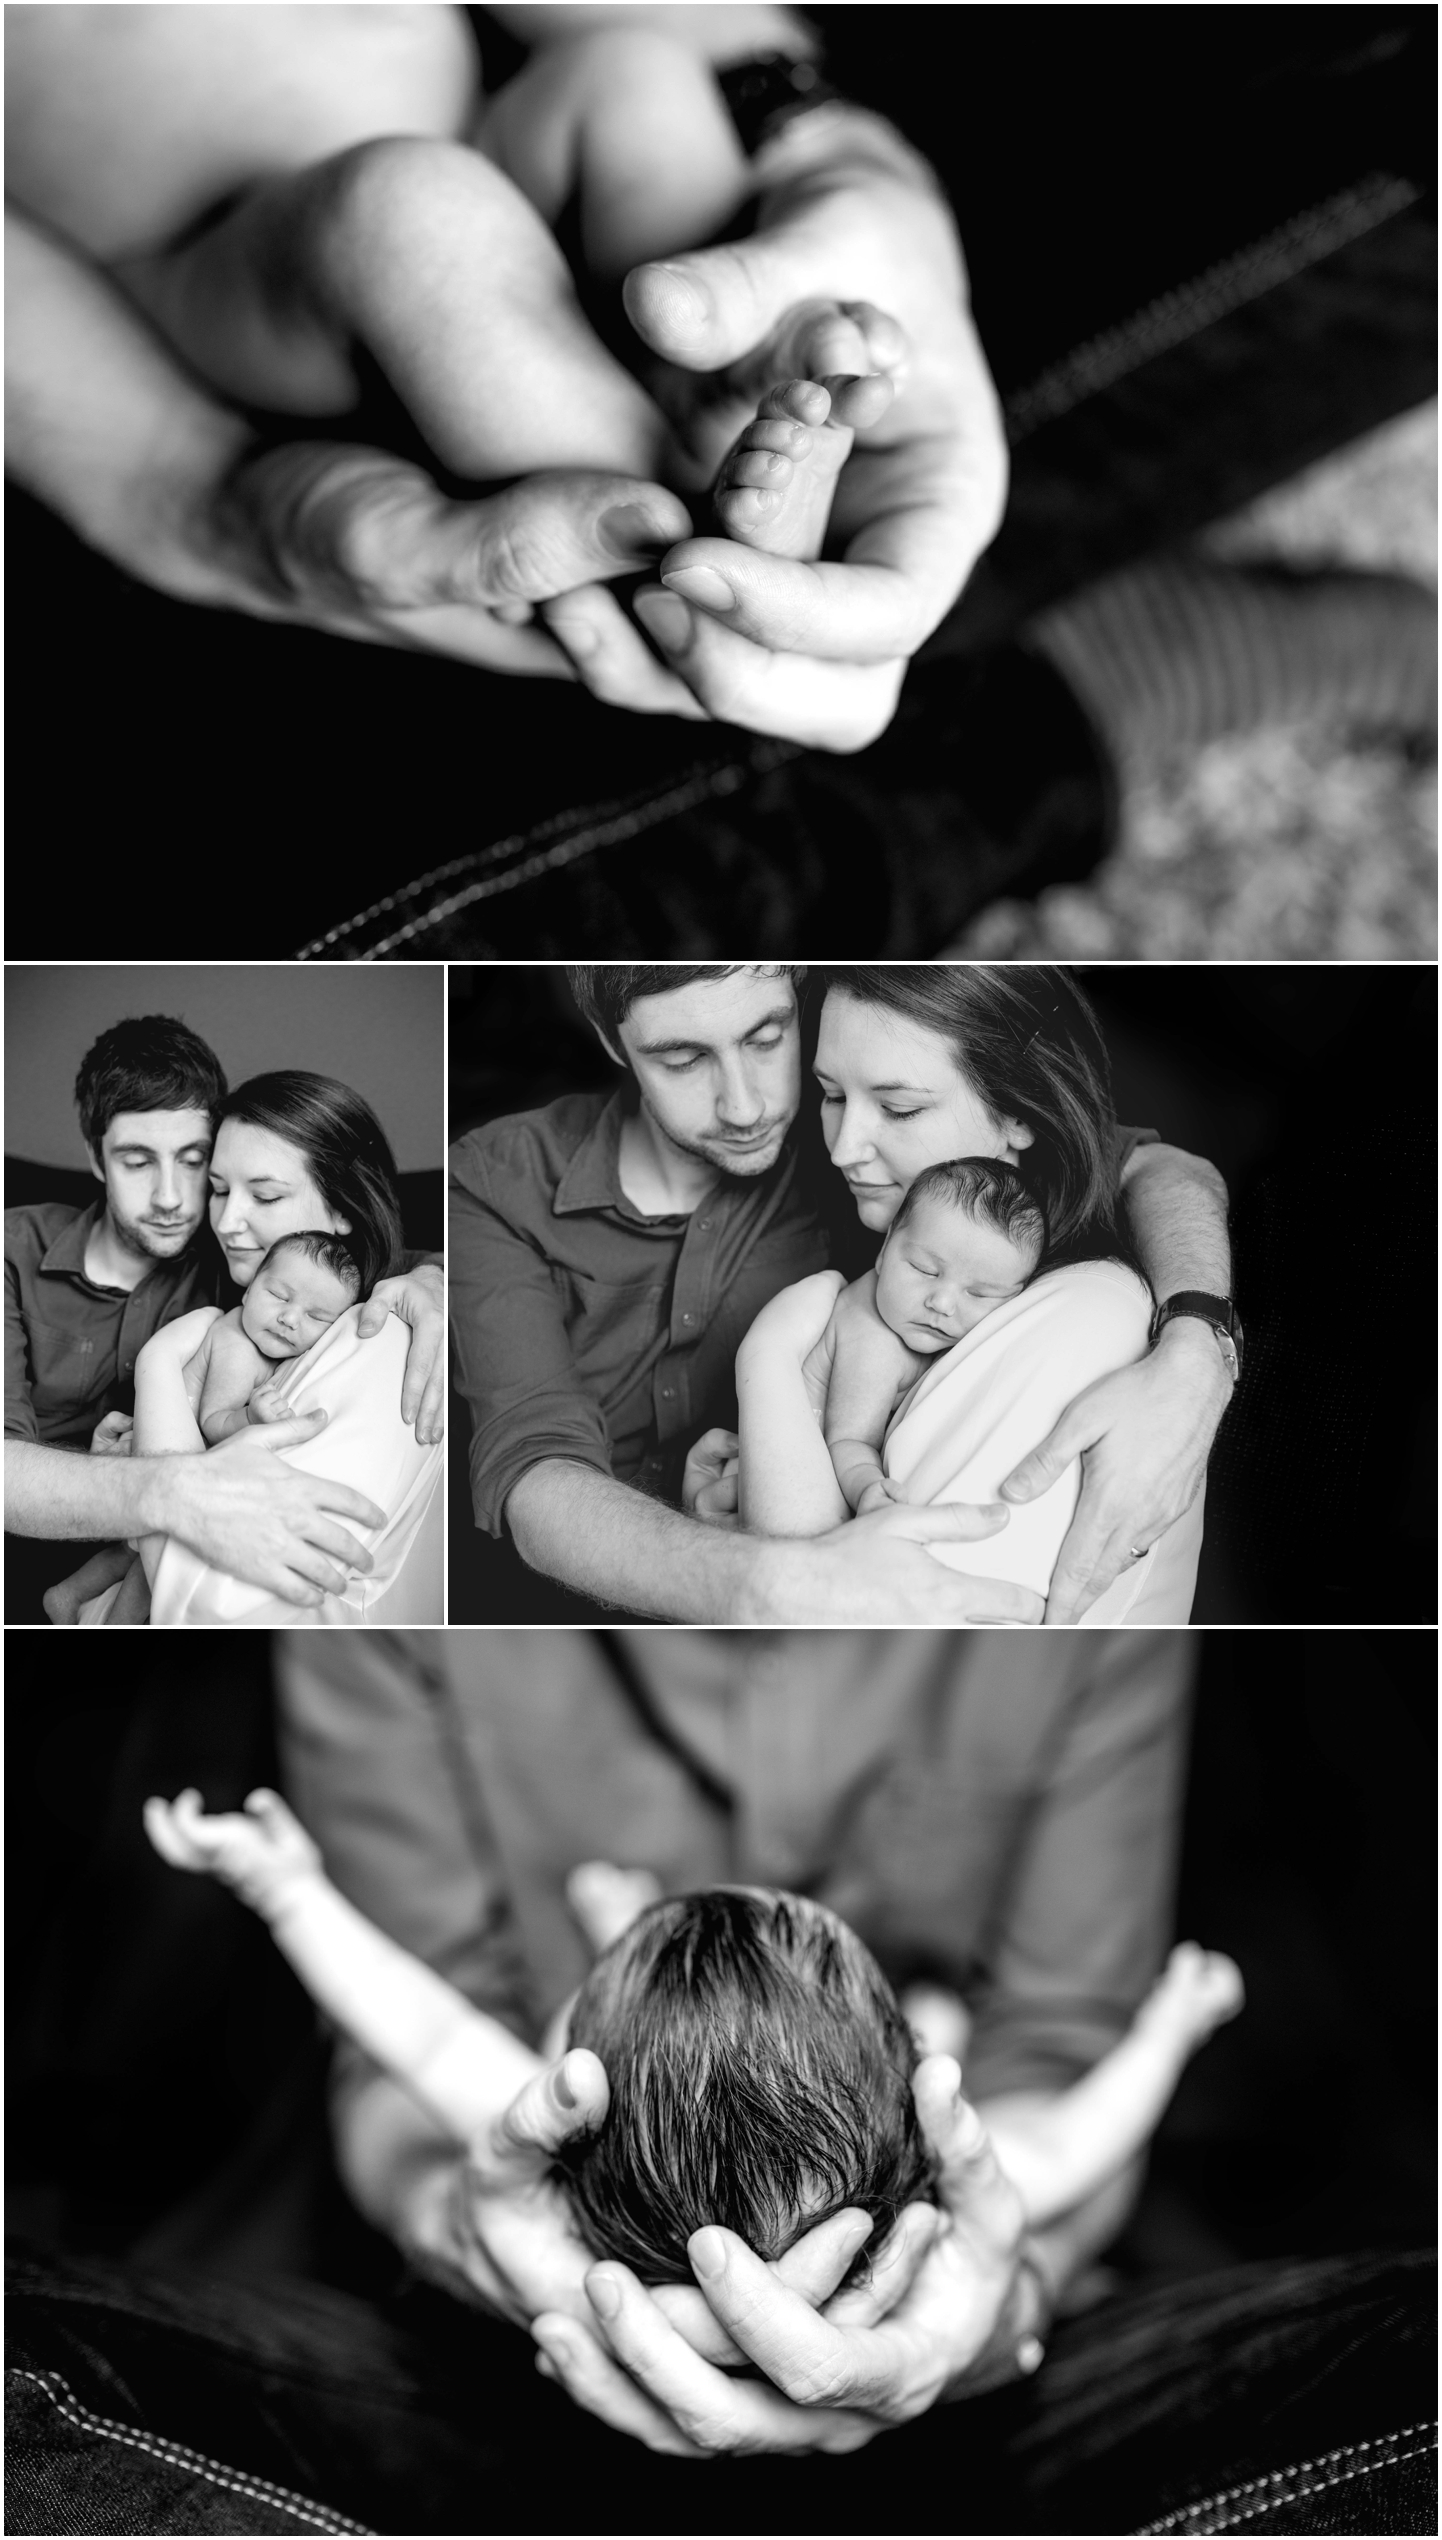 Newborn shoot with Lisa Carpenter Photography, family photographer in Sutton Coldfield, Birmingham, West Midlands